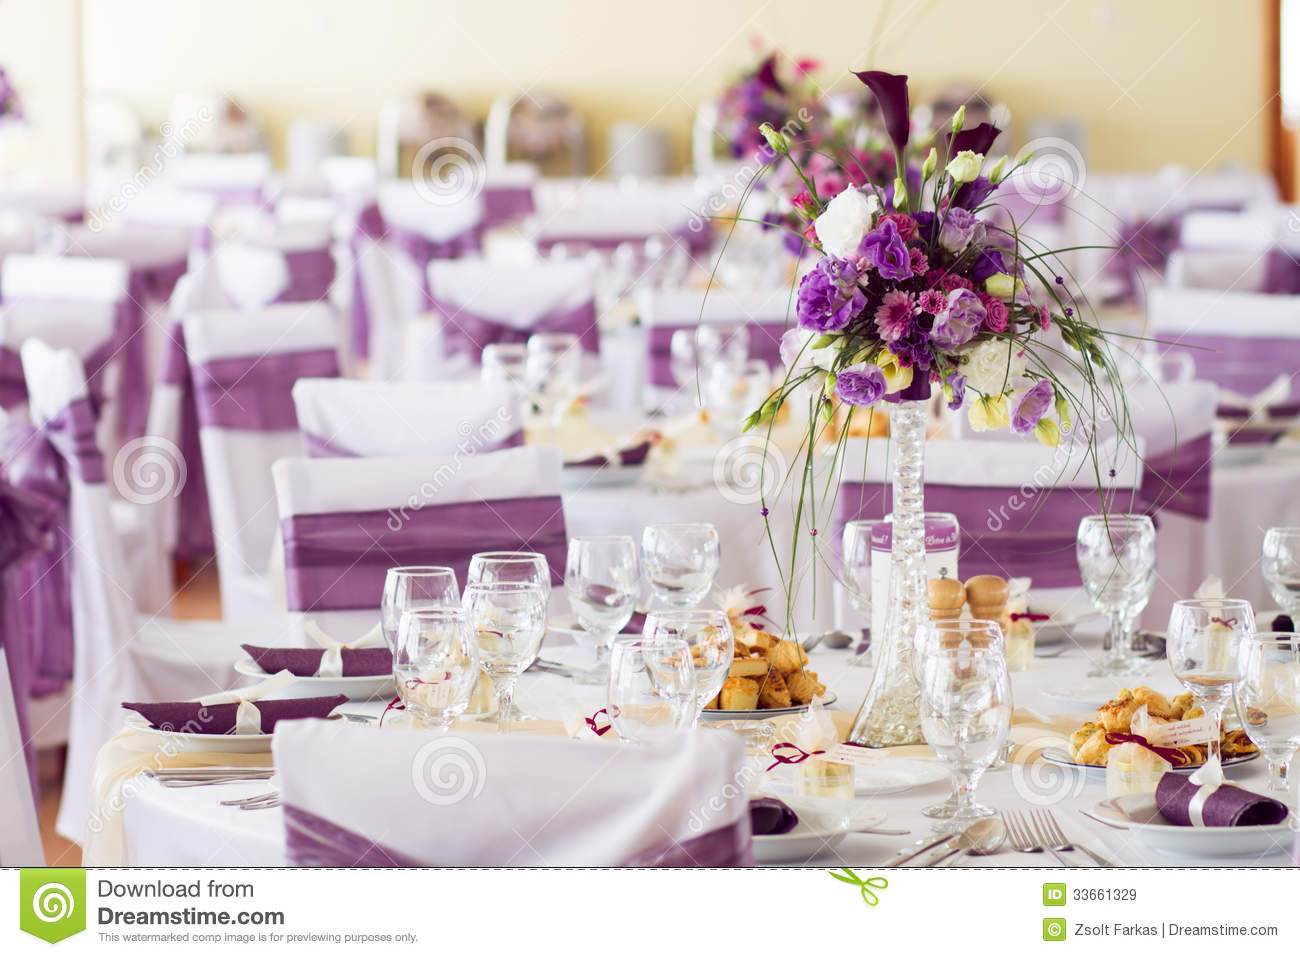 Wedding Table Decoration With Flowers Royalty Free Stock